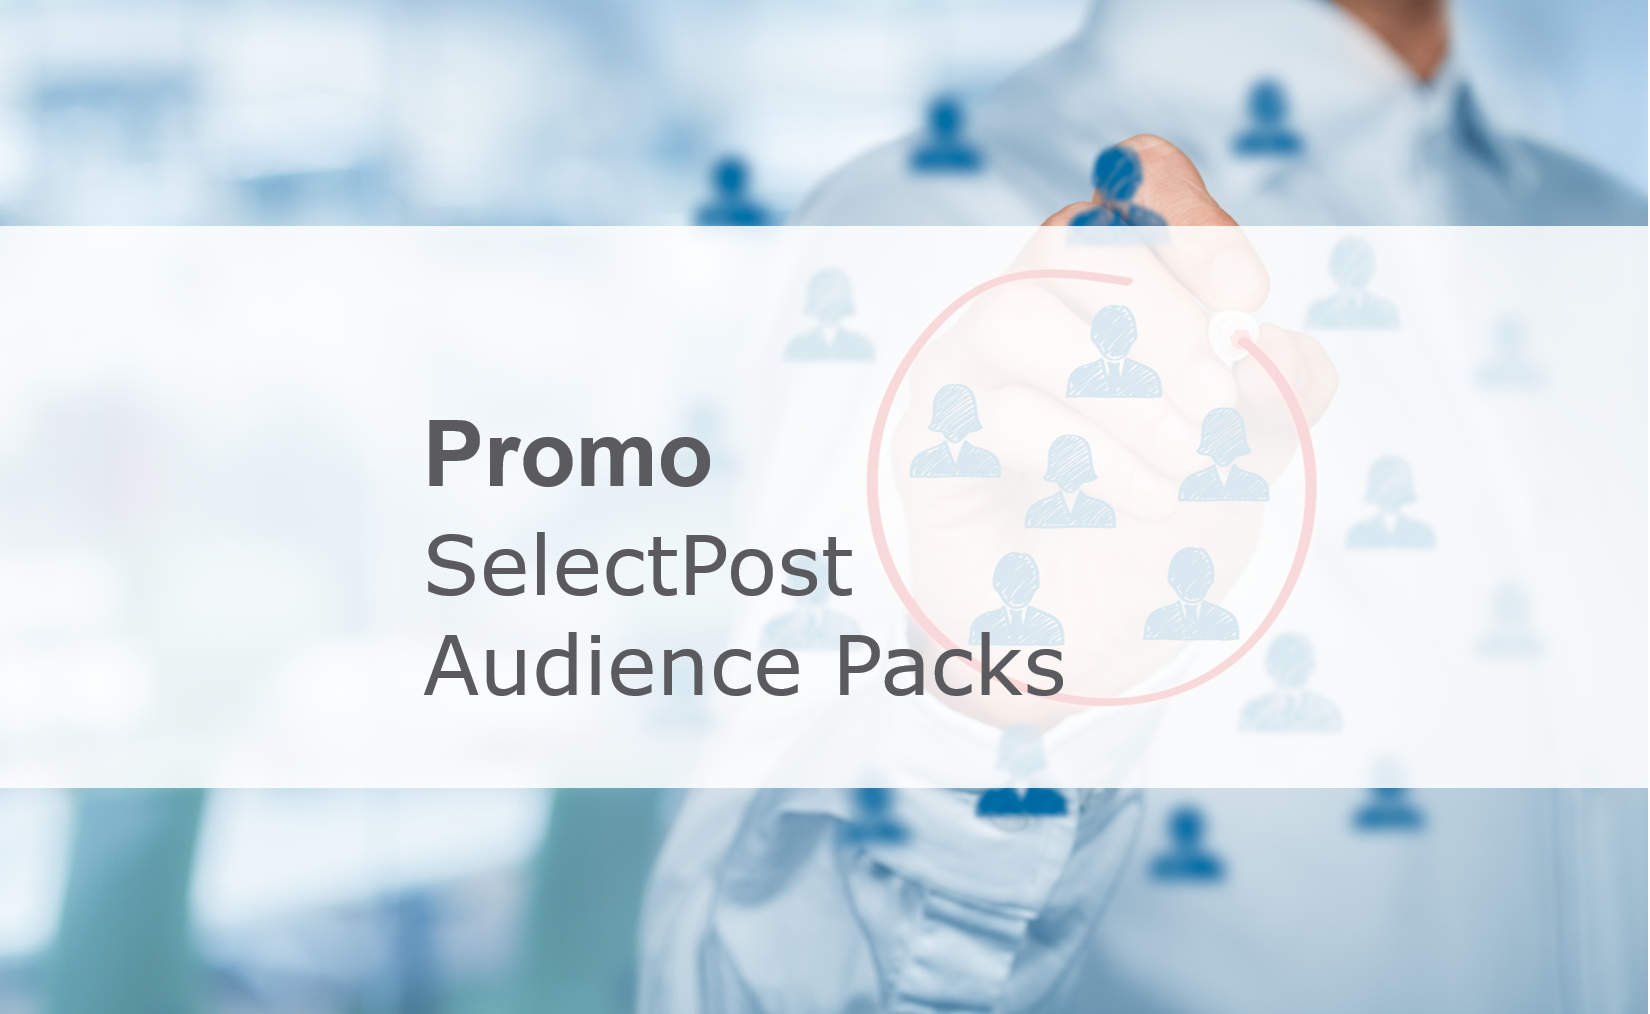 promo SelectPost Audience Packs